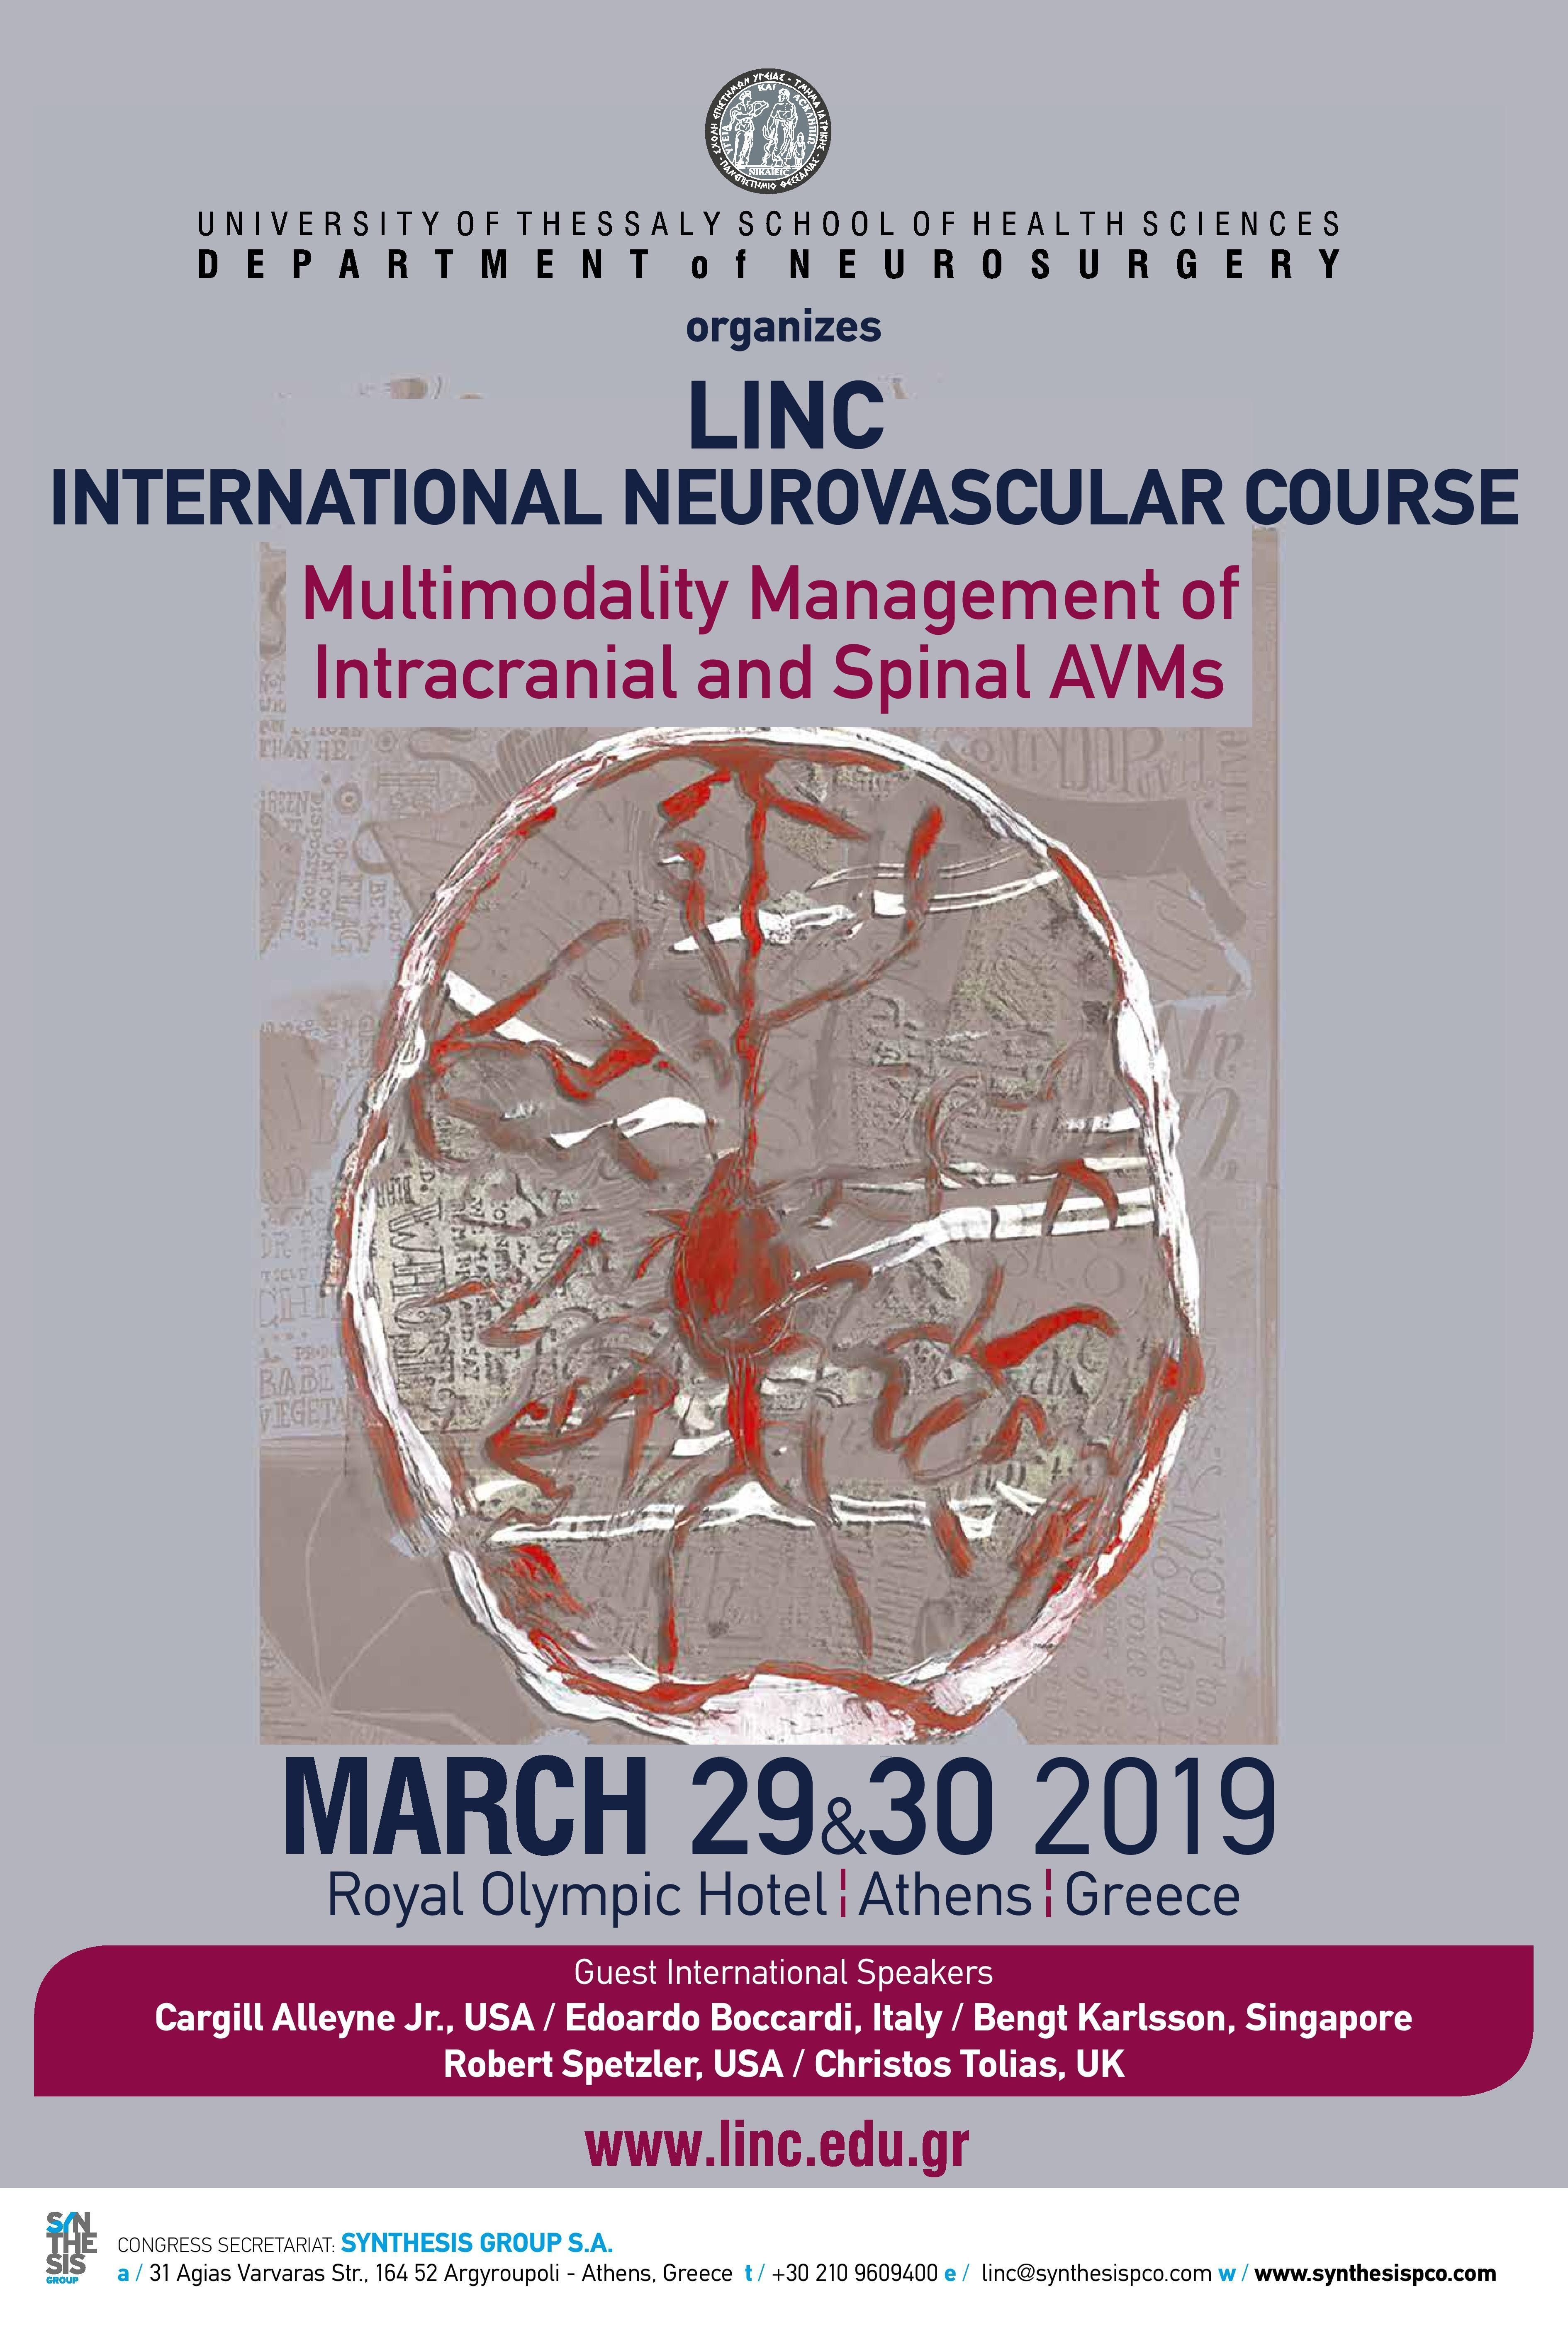 LINC INTERNATIONAL NEUROVASCULAR COURSE